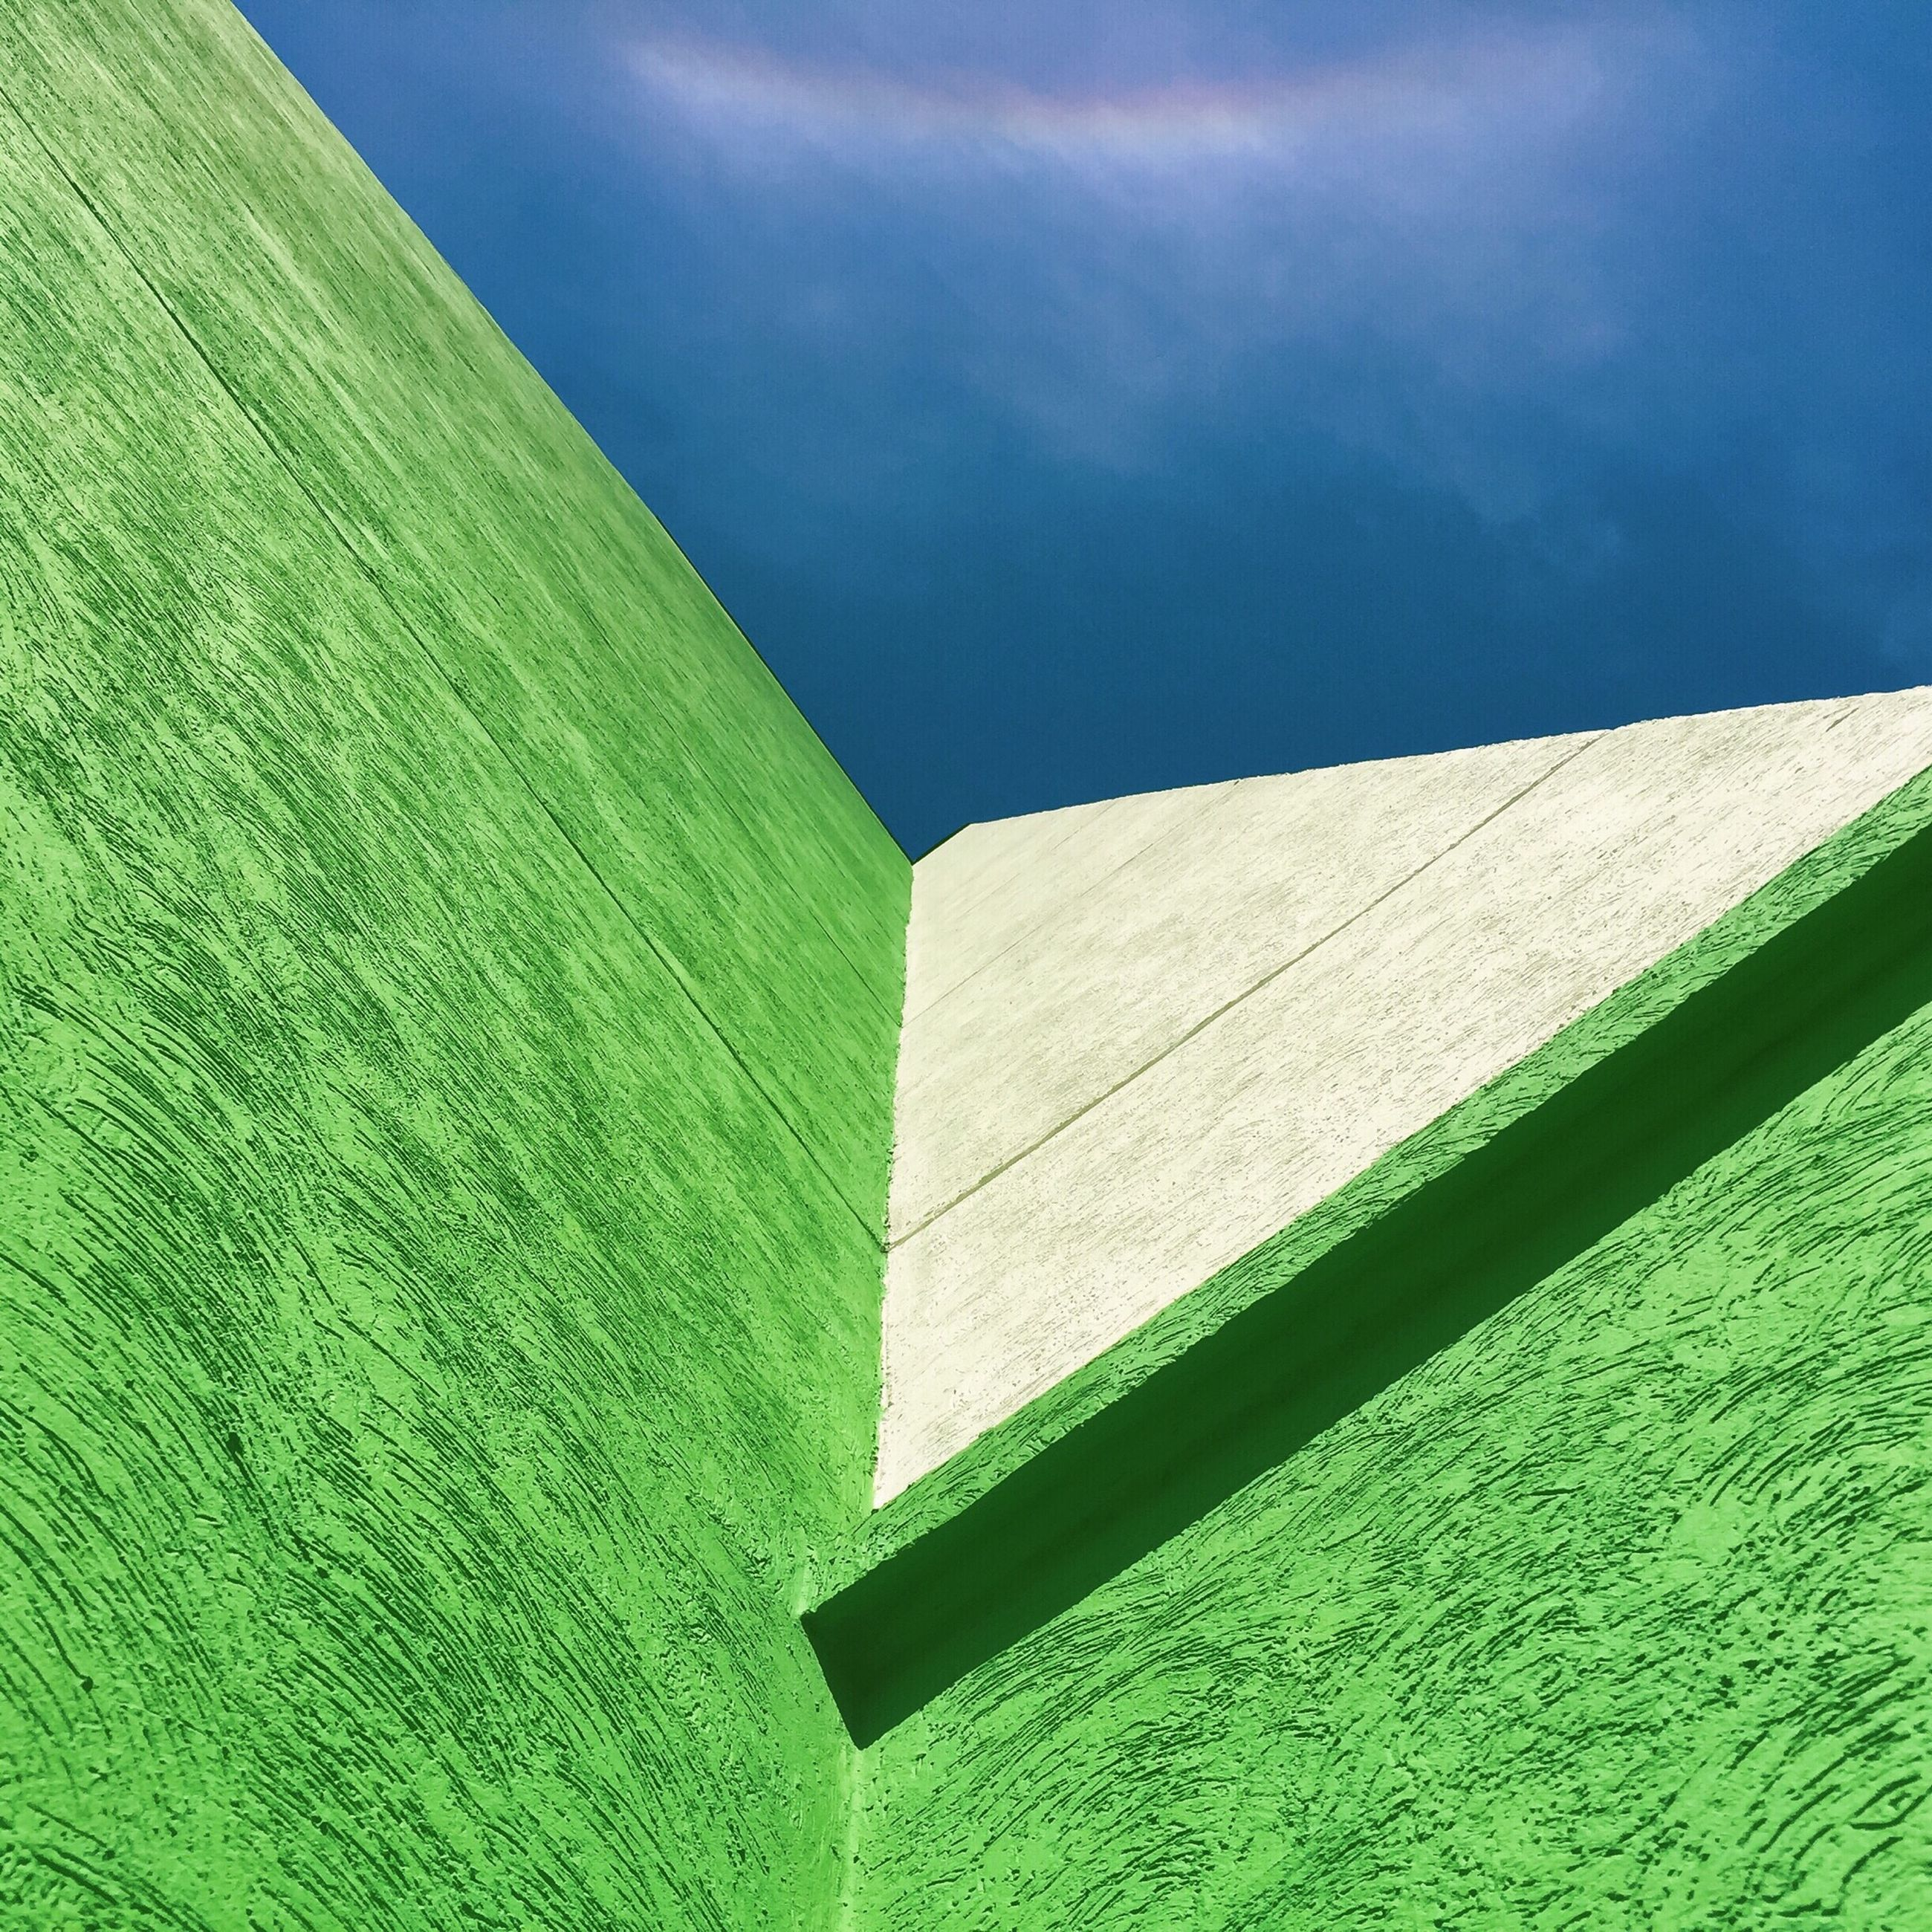 built structure, architecture, green color, blue, building exterior, sky, day, outdoors, pattern, green, no people, nature, water, low angle view, sunlight, close-up, cloud, wall - building feature, growth, part of